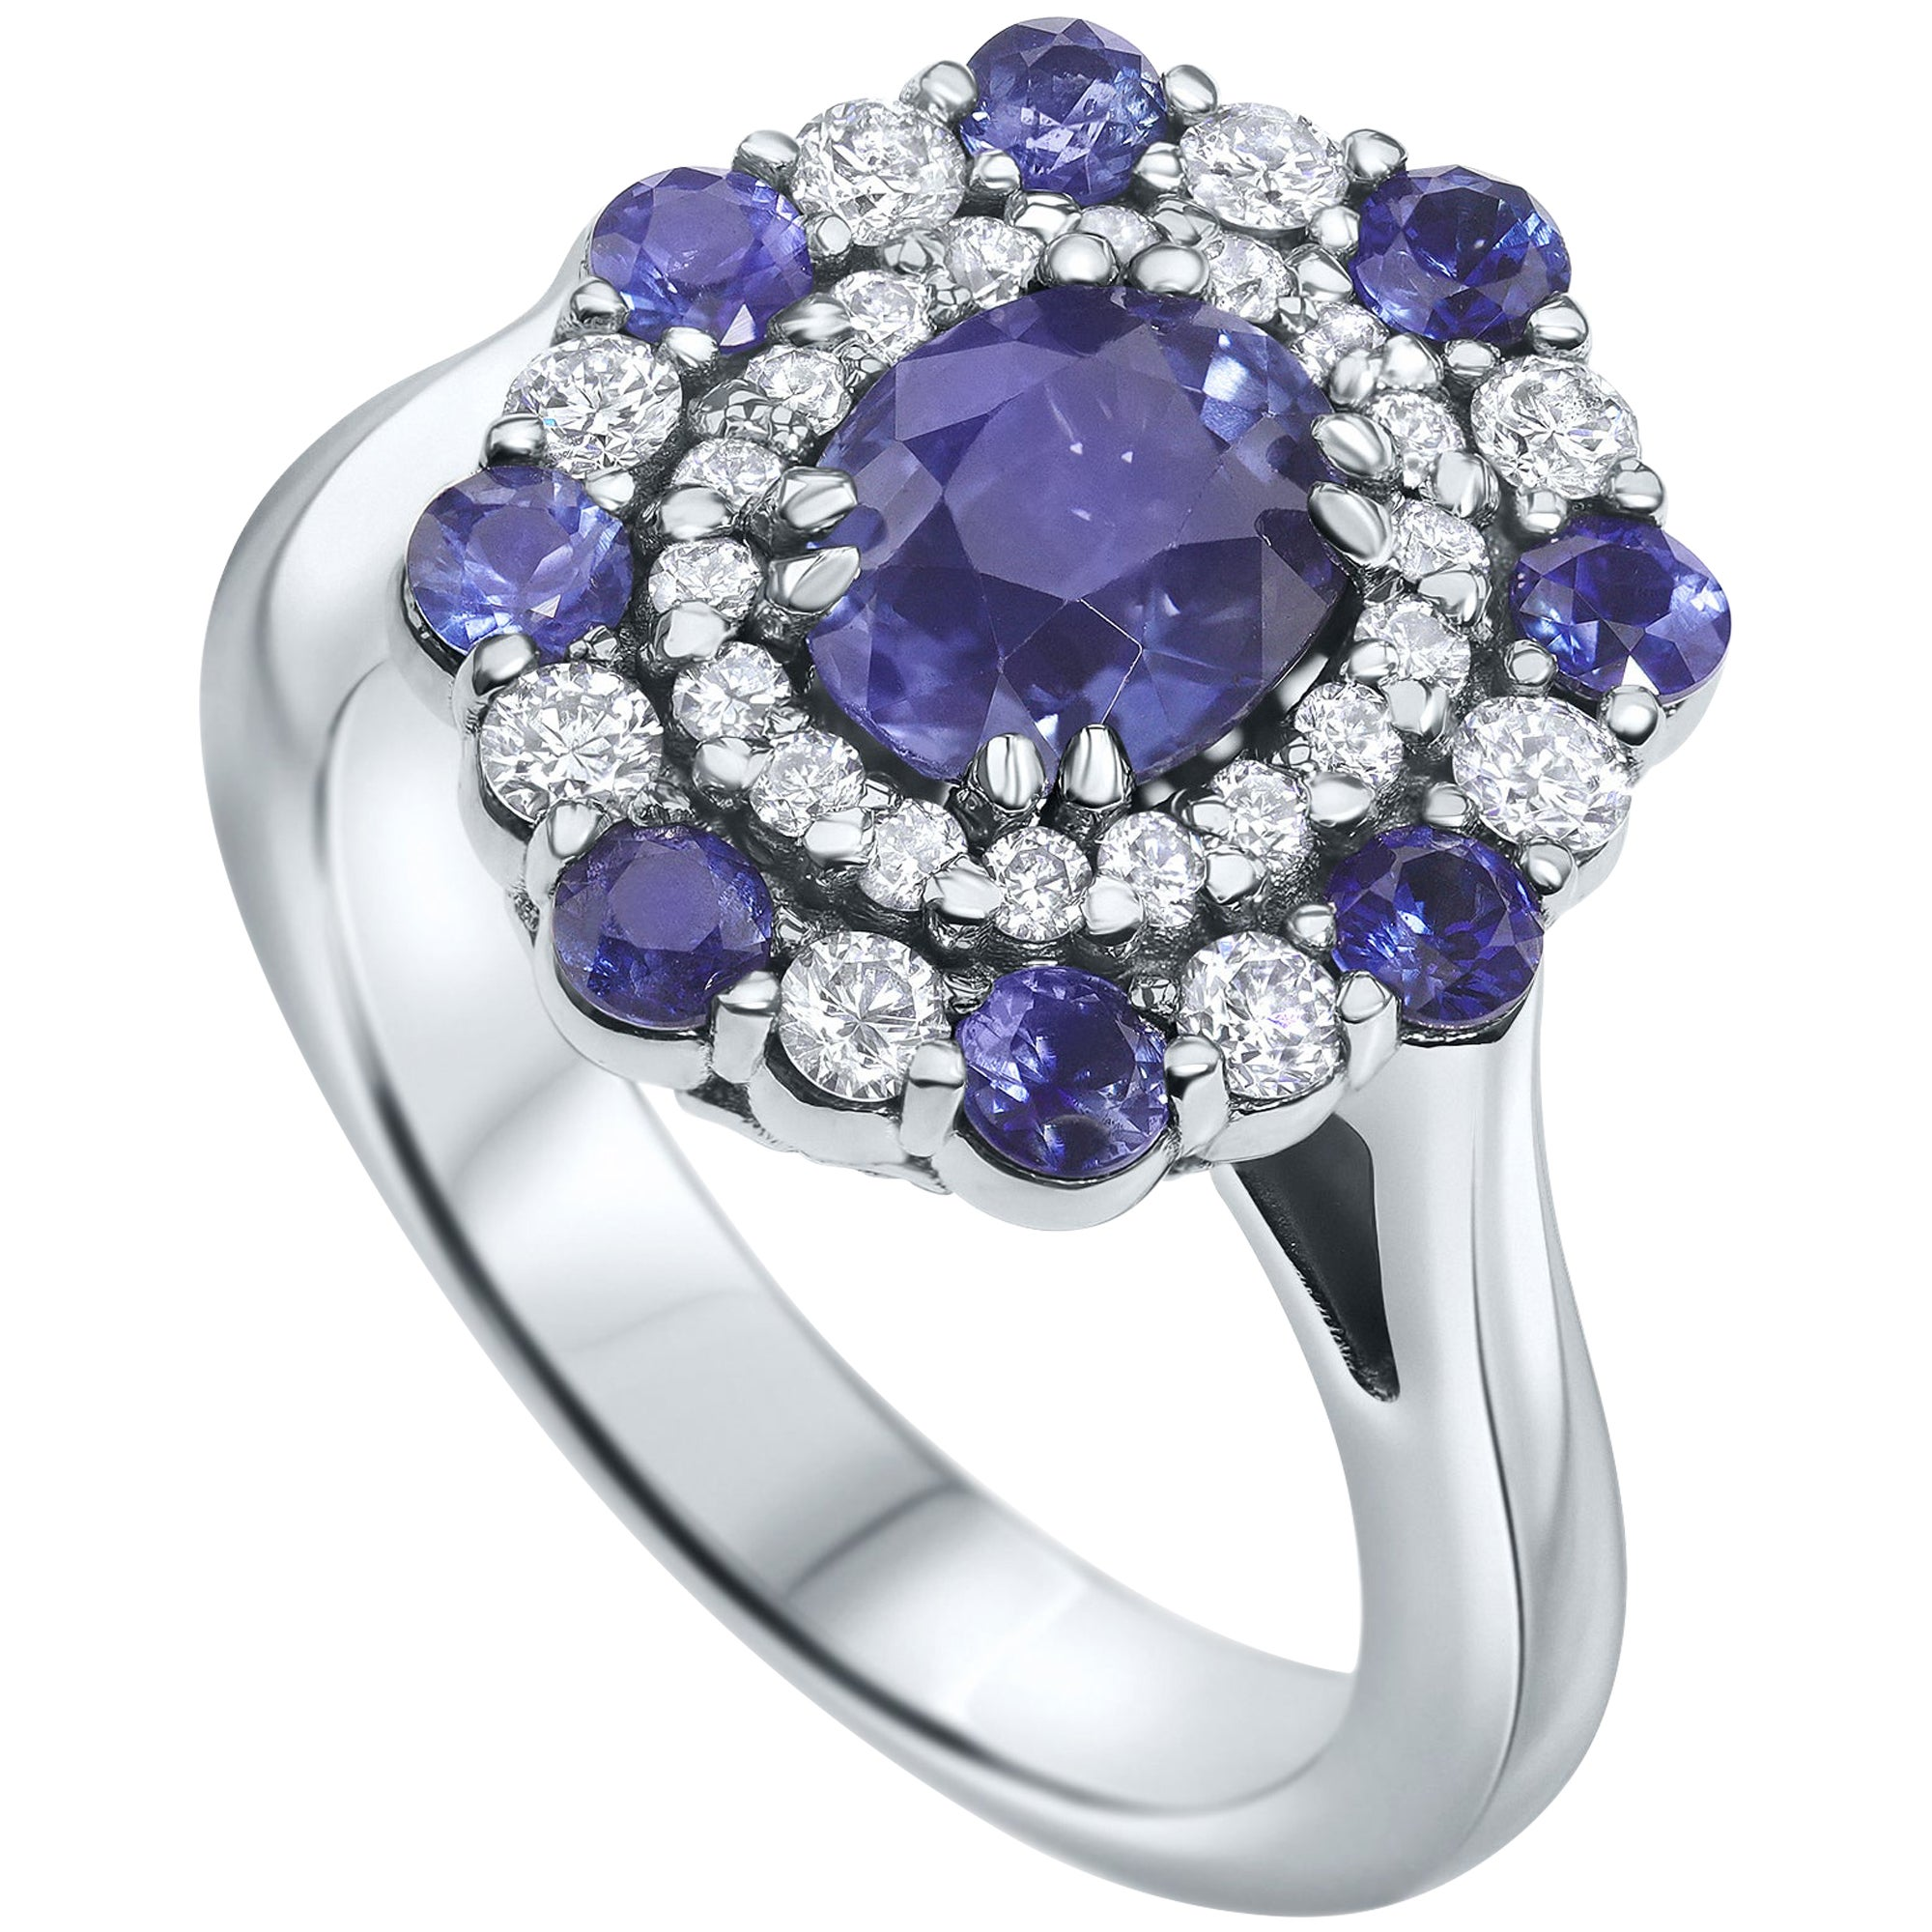 2.5 Carat GIA Certified Natural Blue Sapphire and Diamonds Ring - Shlomit Rogel